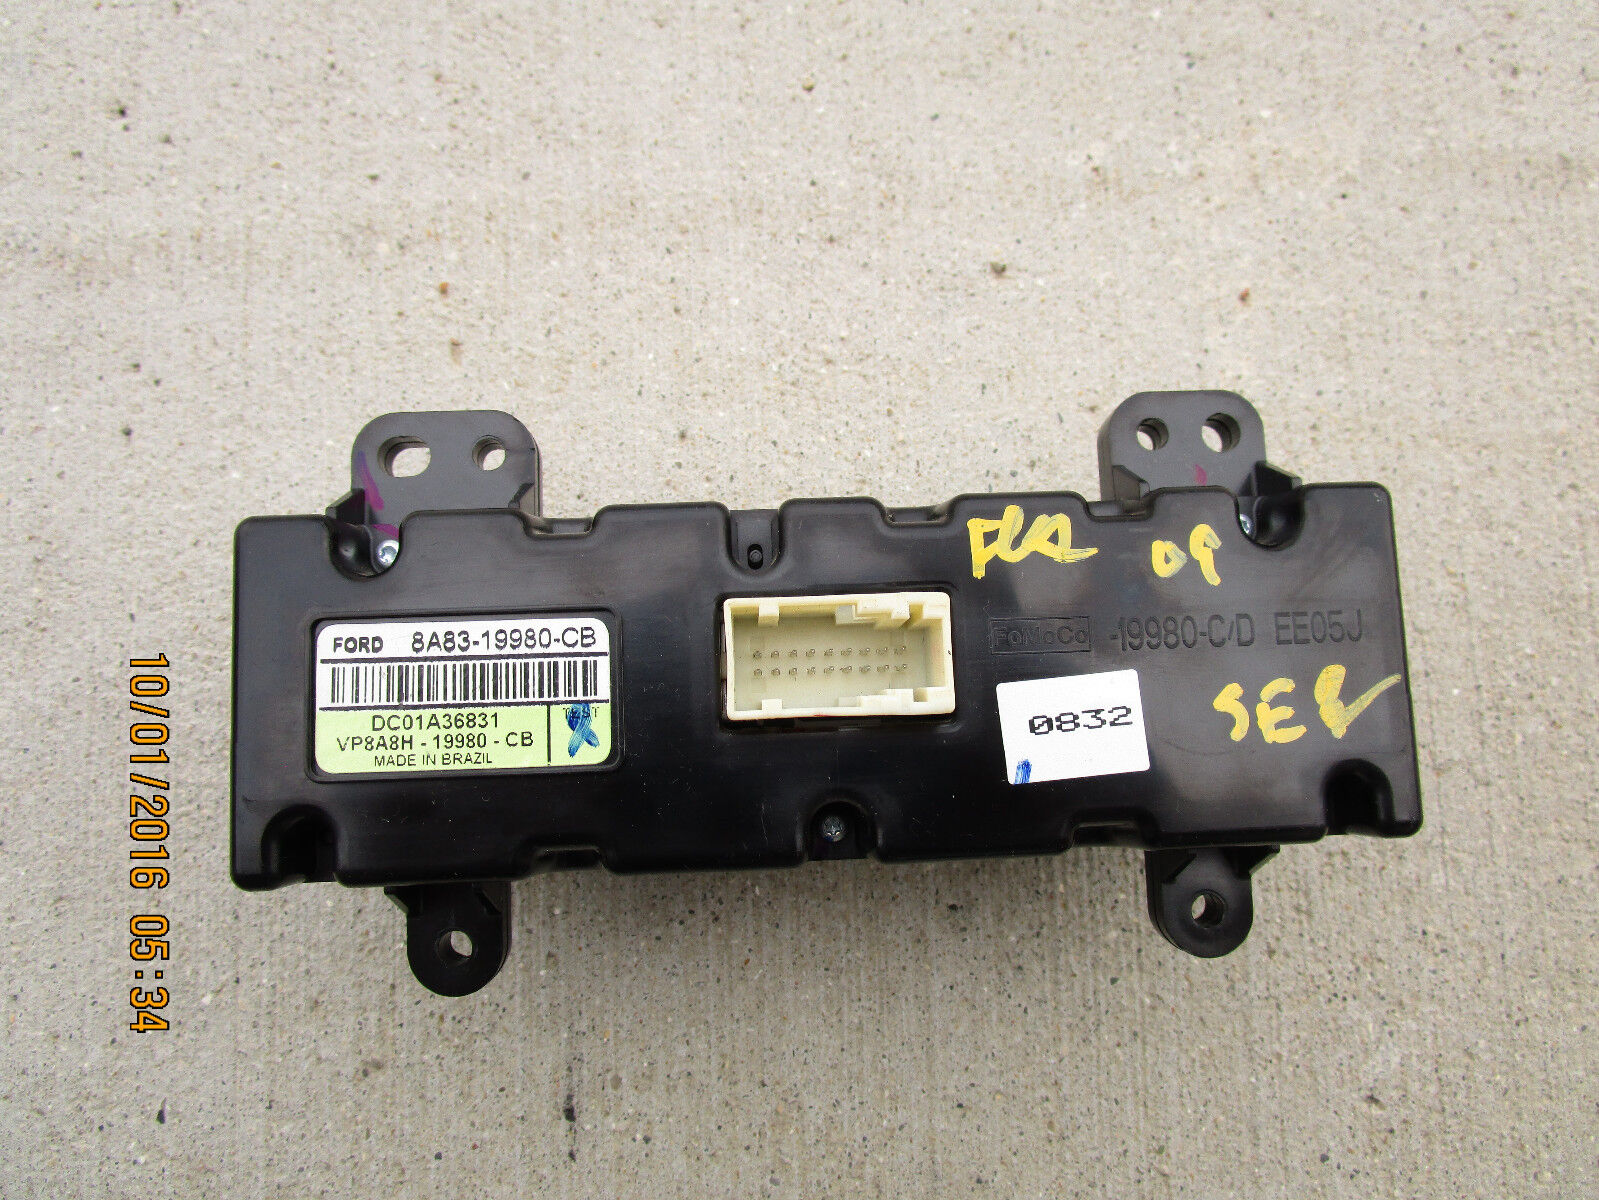 Used Ford Flex A C And Heater Controls For Sale 2012 Fuse Box 09 Sel Se Limited Rear Climate Control P N 8a1983 1984 1997 19980 Cb